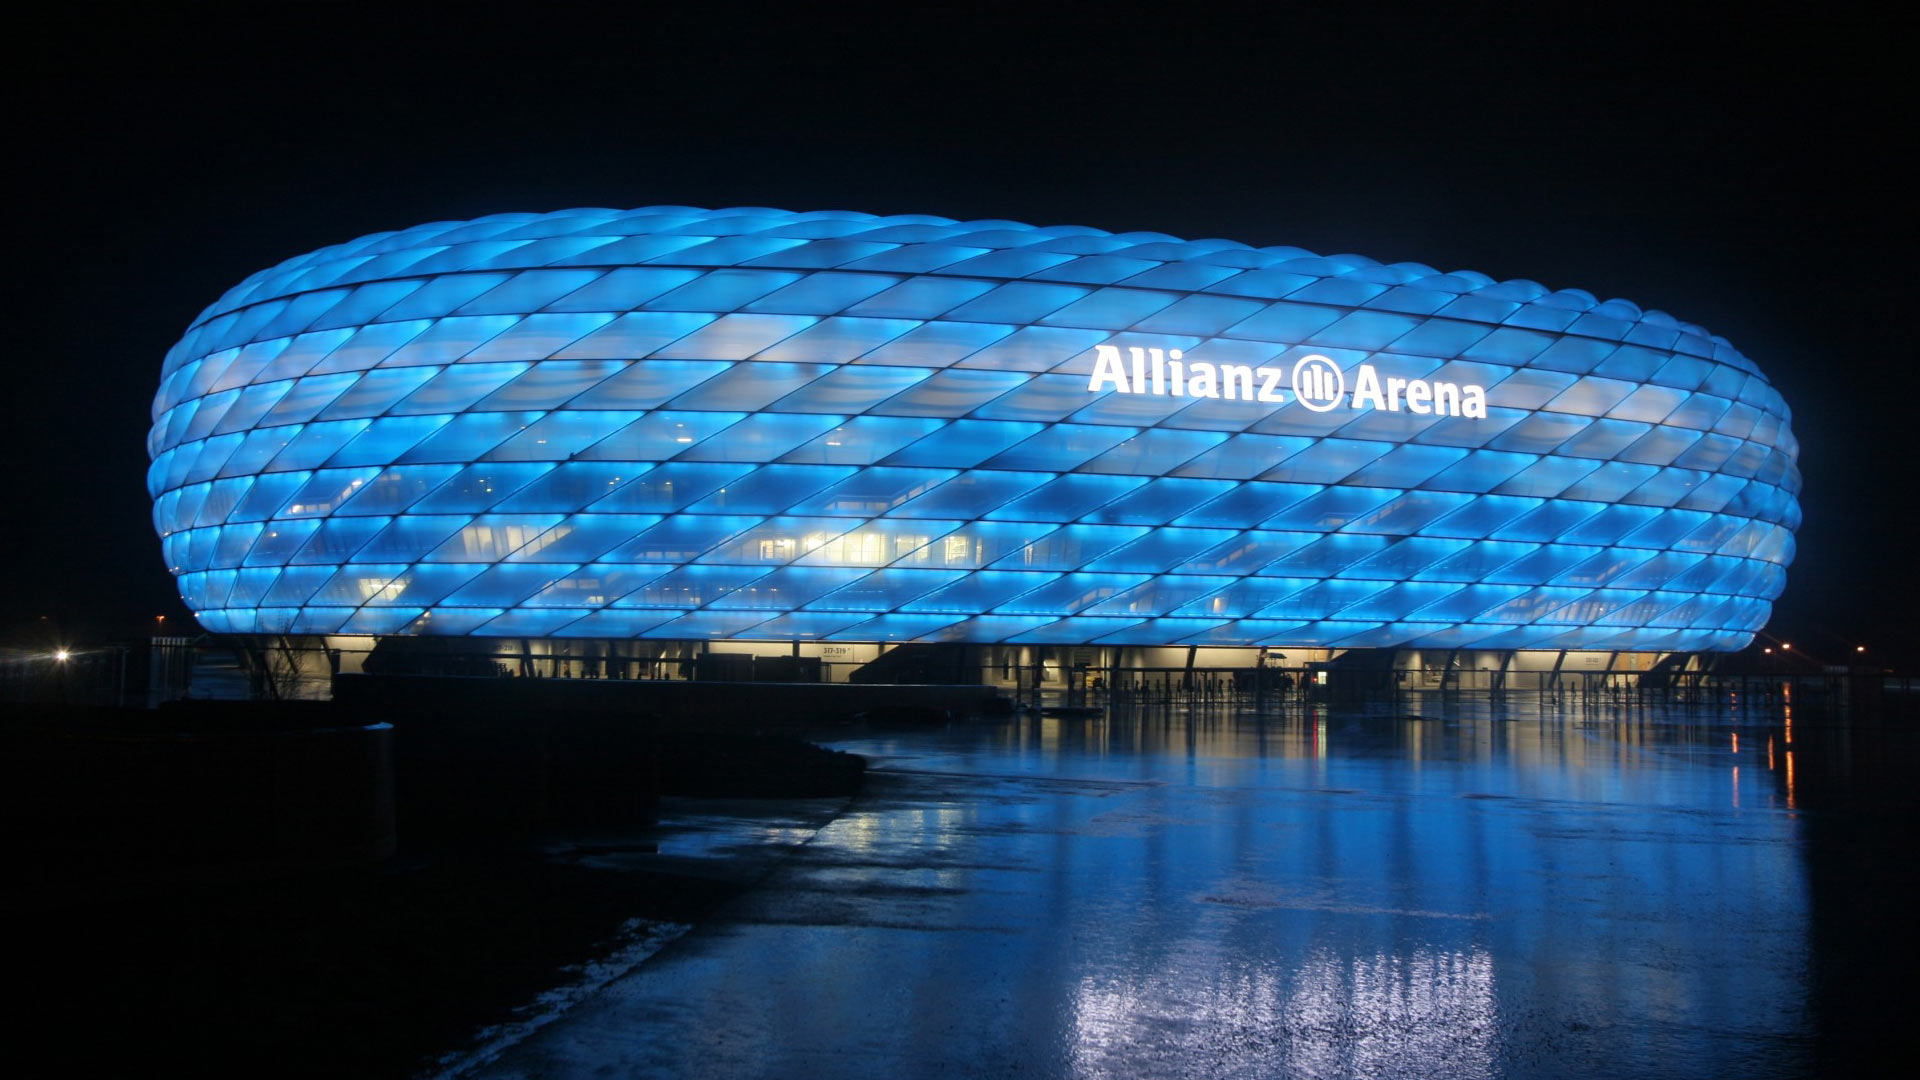 Bayern Munich Allianz Arena Wallpapers